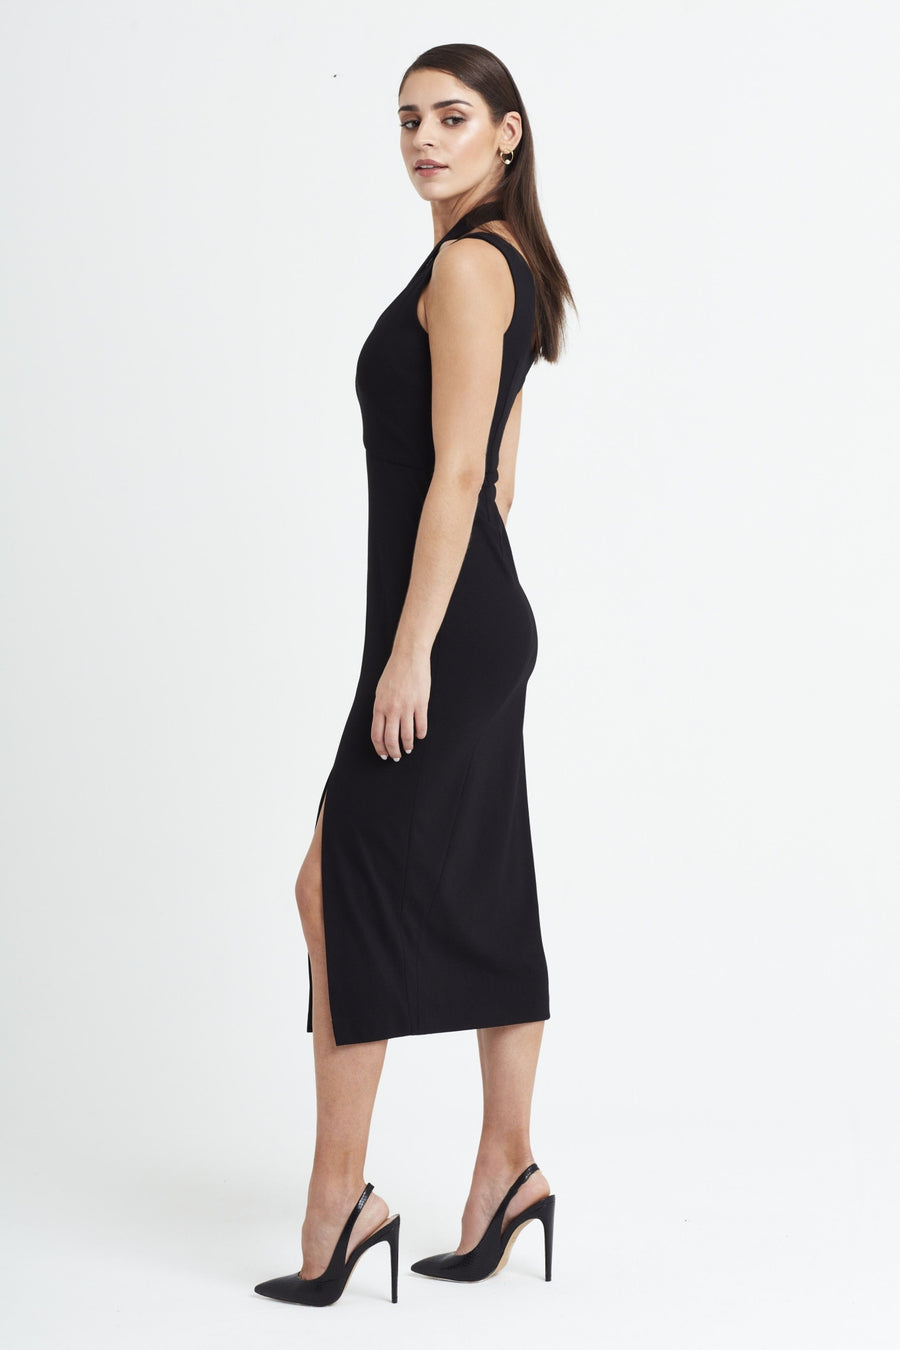 Curvature Dress in Black - Dresses